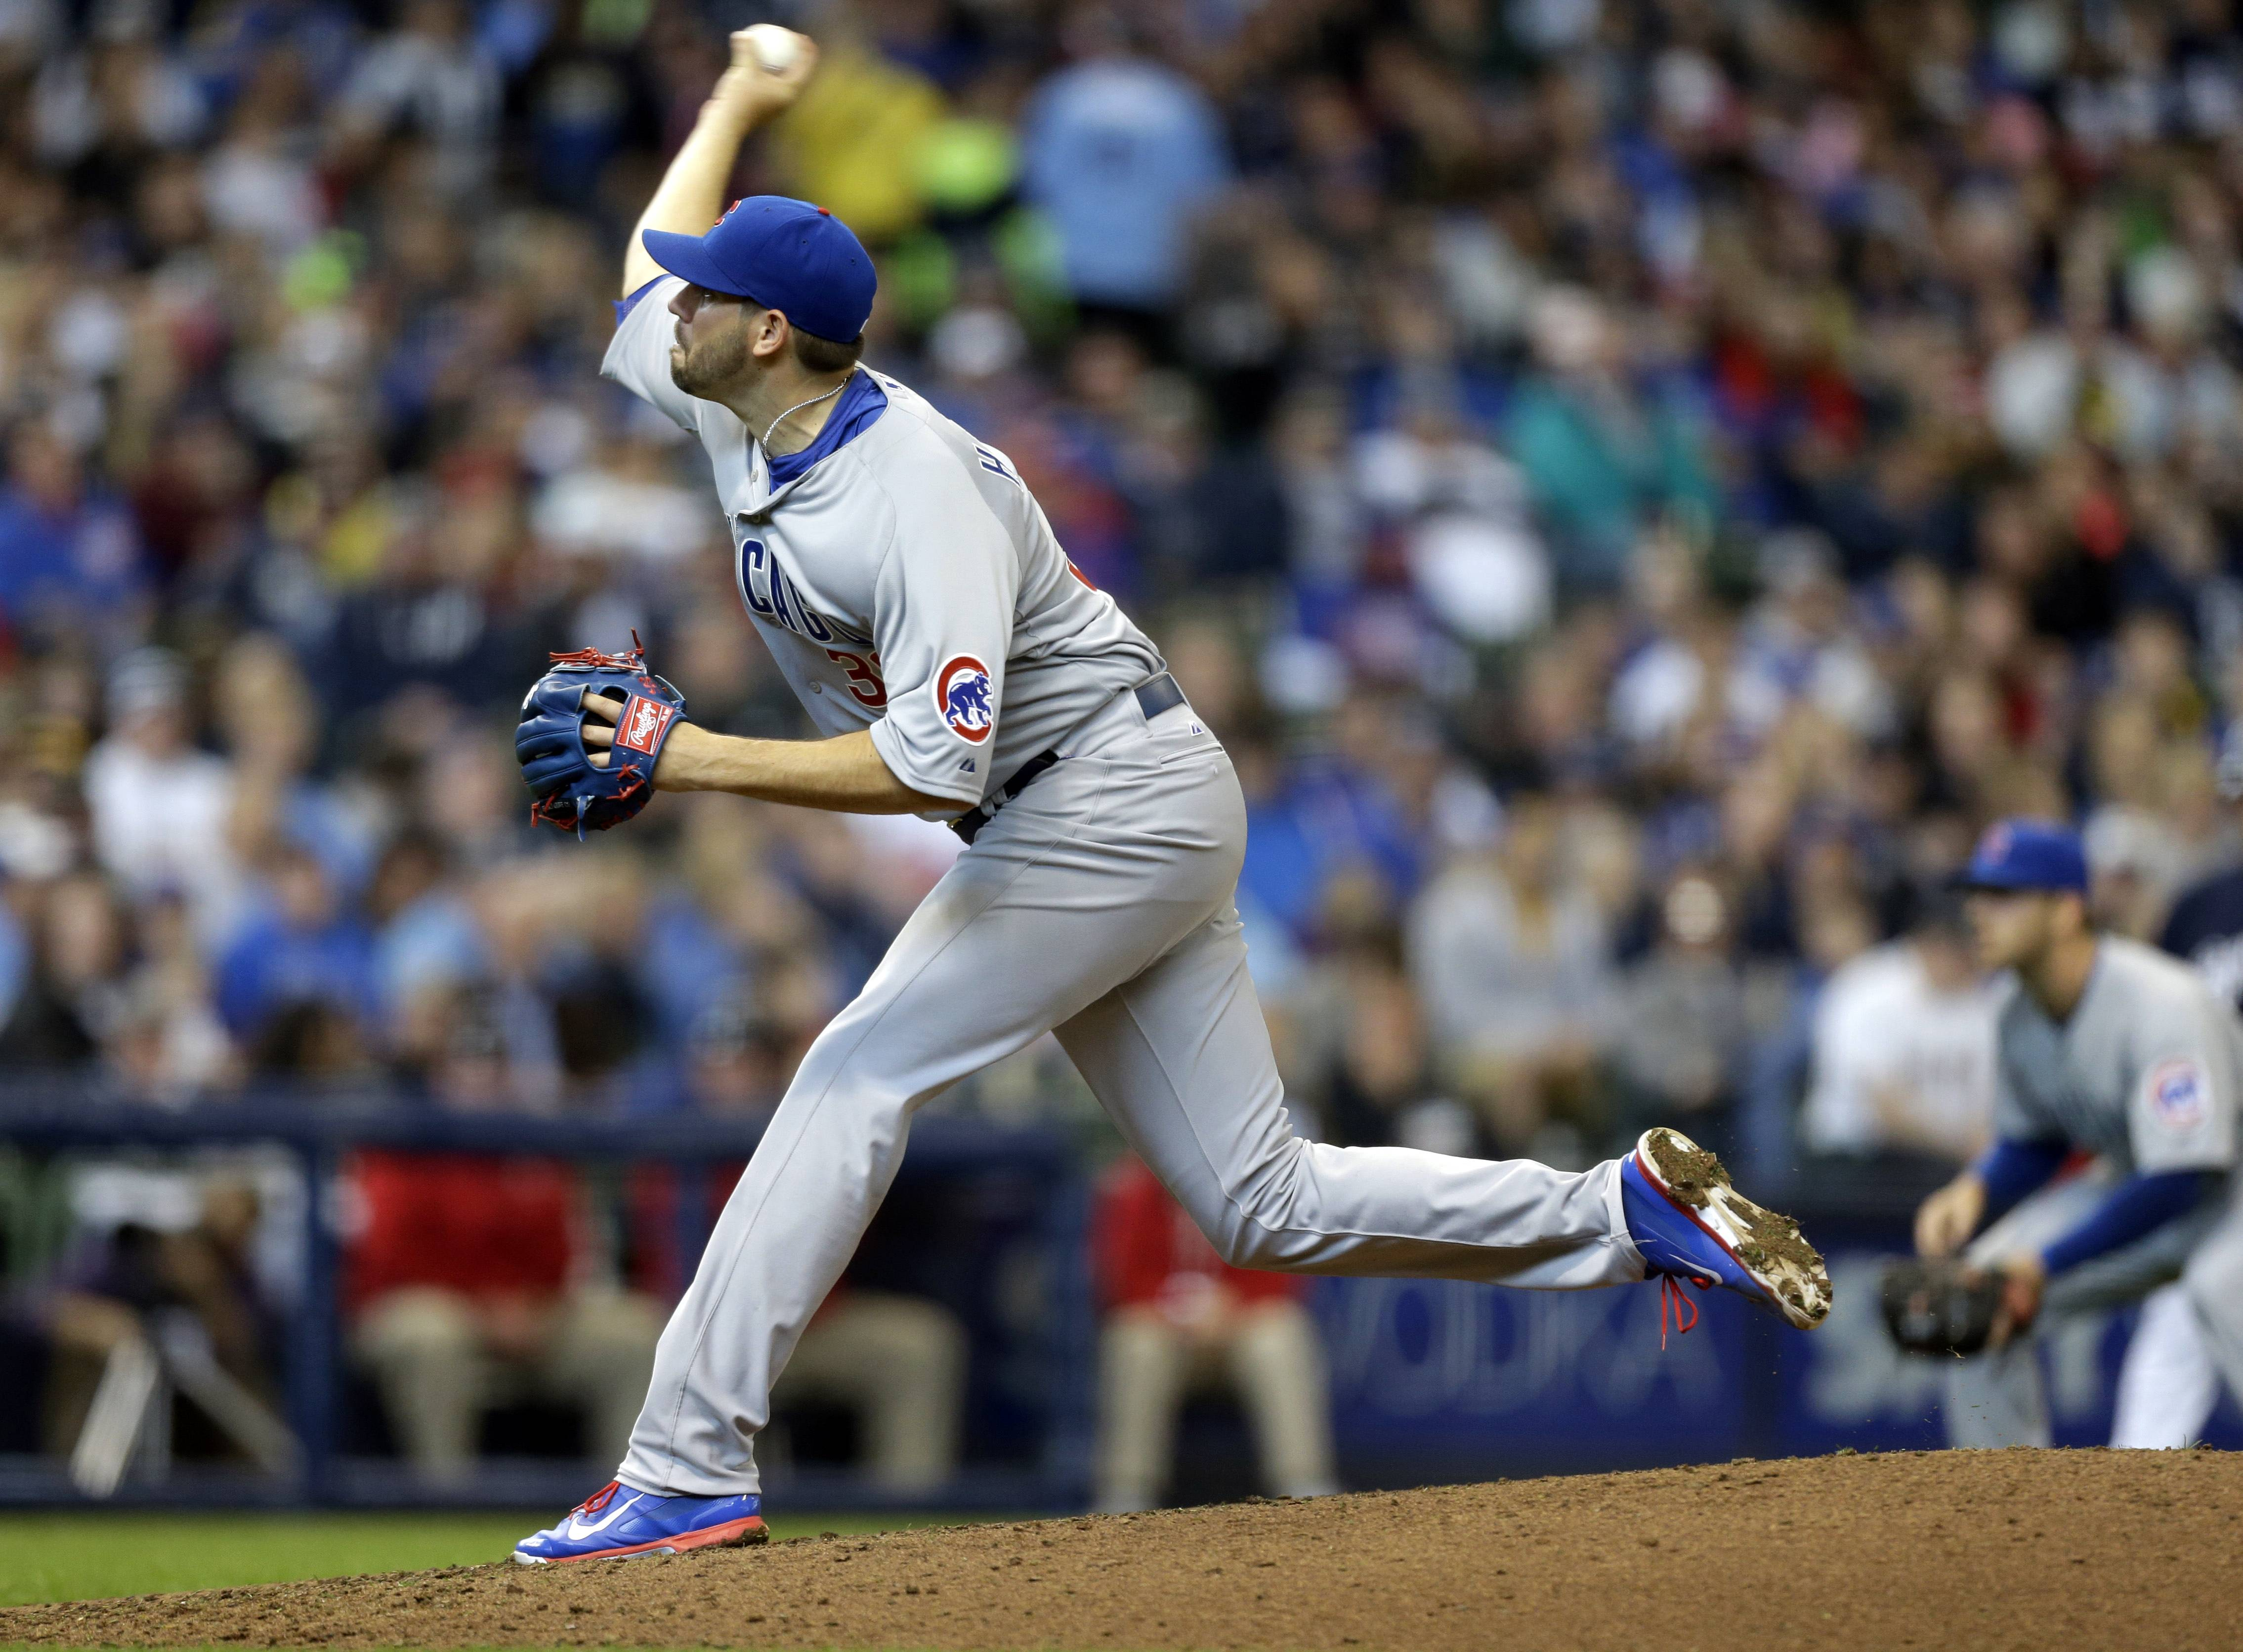 Cubs starter Jason Hammel worked 7-plus innings and took a no-hitter into the sixth against the host Brewers on Sunday. He has recorded in 5 quality starts in 5 outings and has a record of 4-1 with a 2.08 ERA.